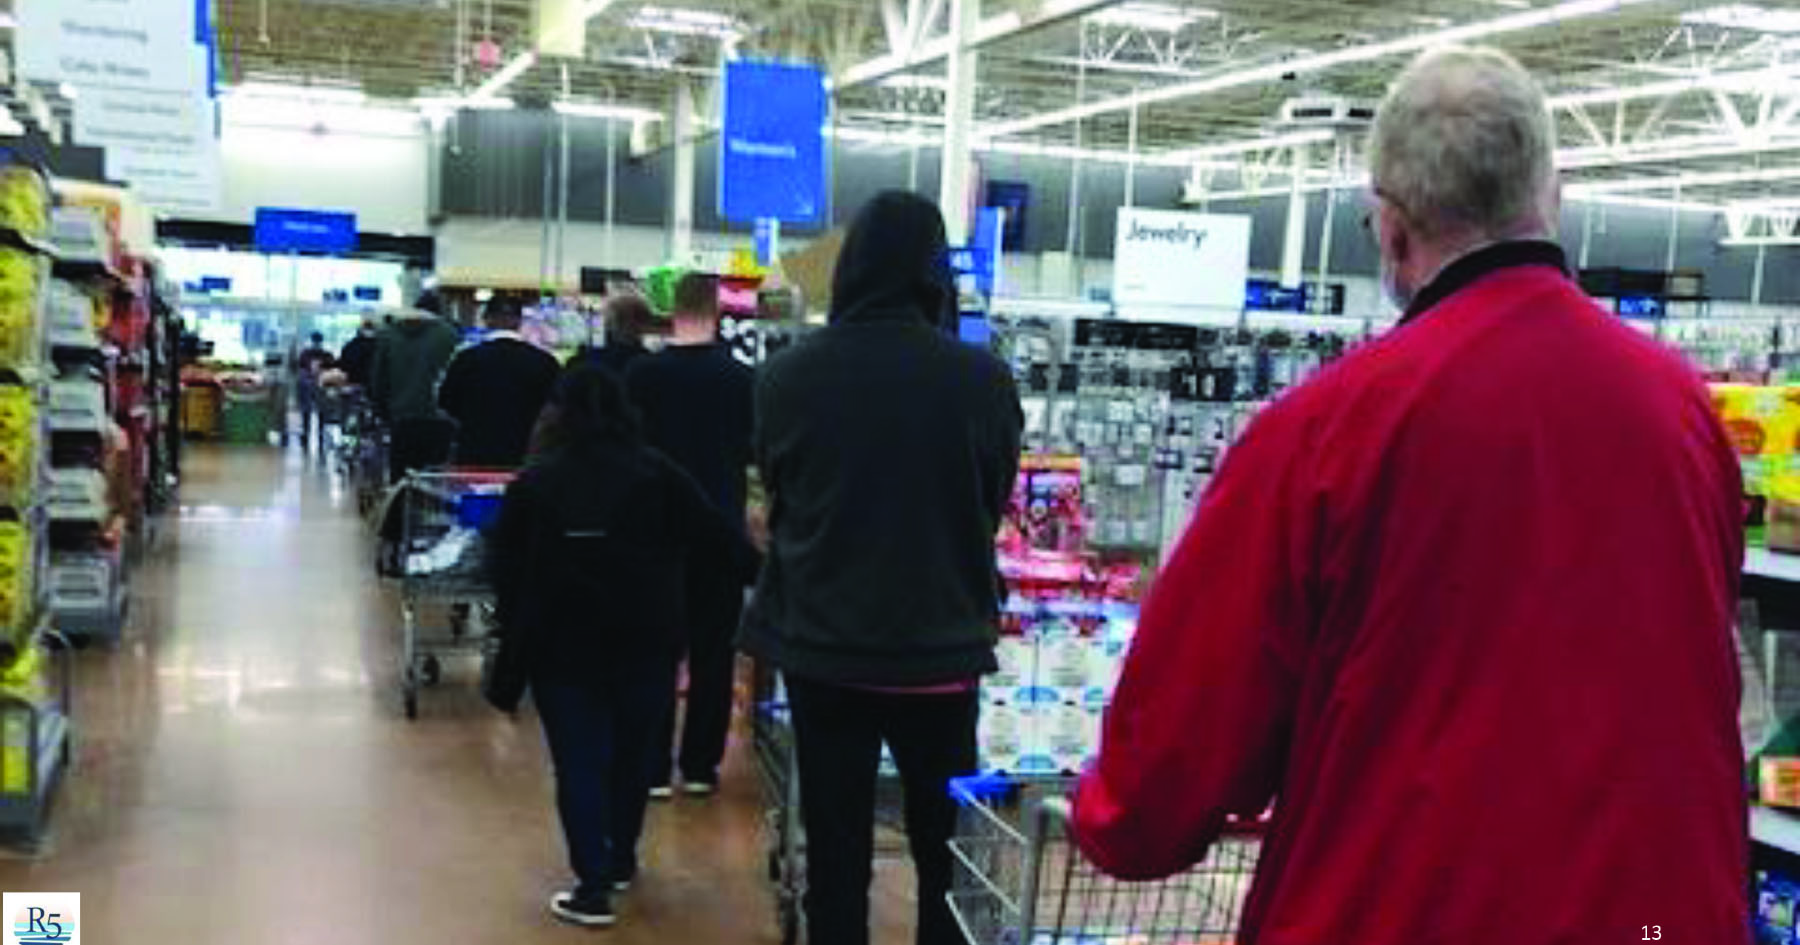 Checkout line in Walmart Supercenter store in Pennsylvania, March 25, 2021